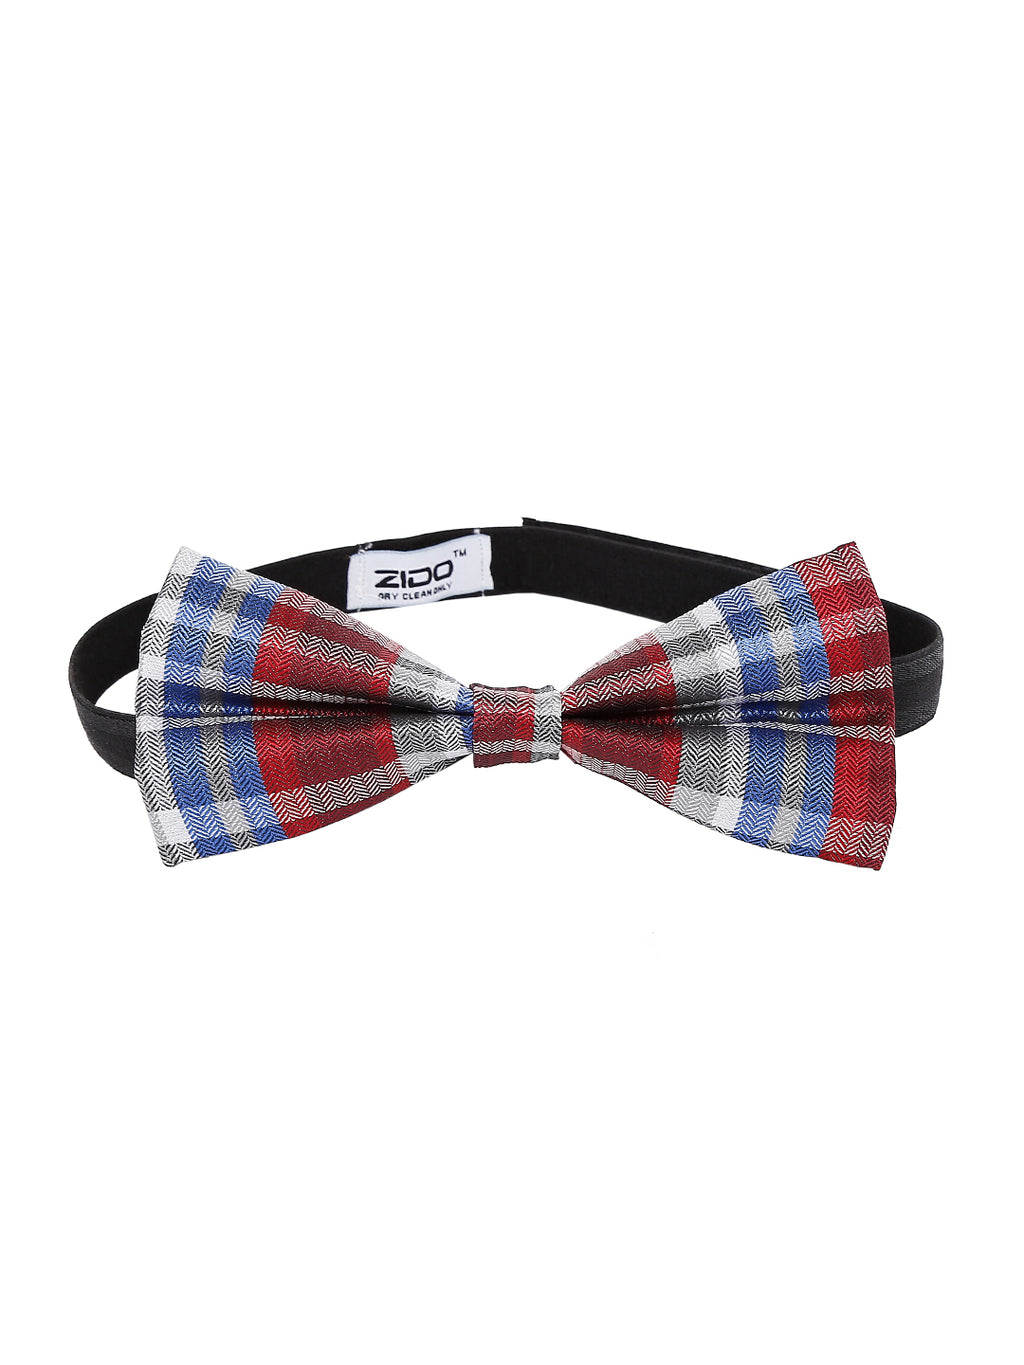 Zido Bow Tie for Men BJQ704